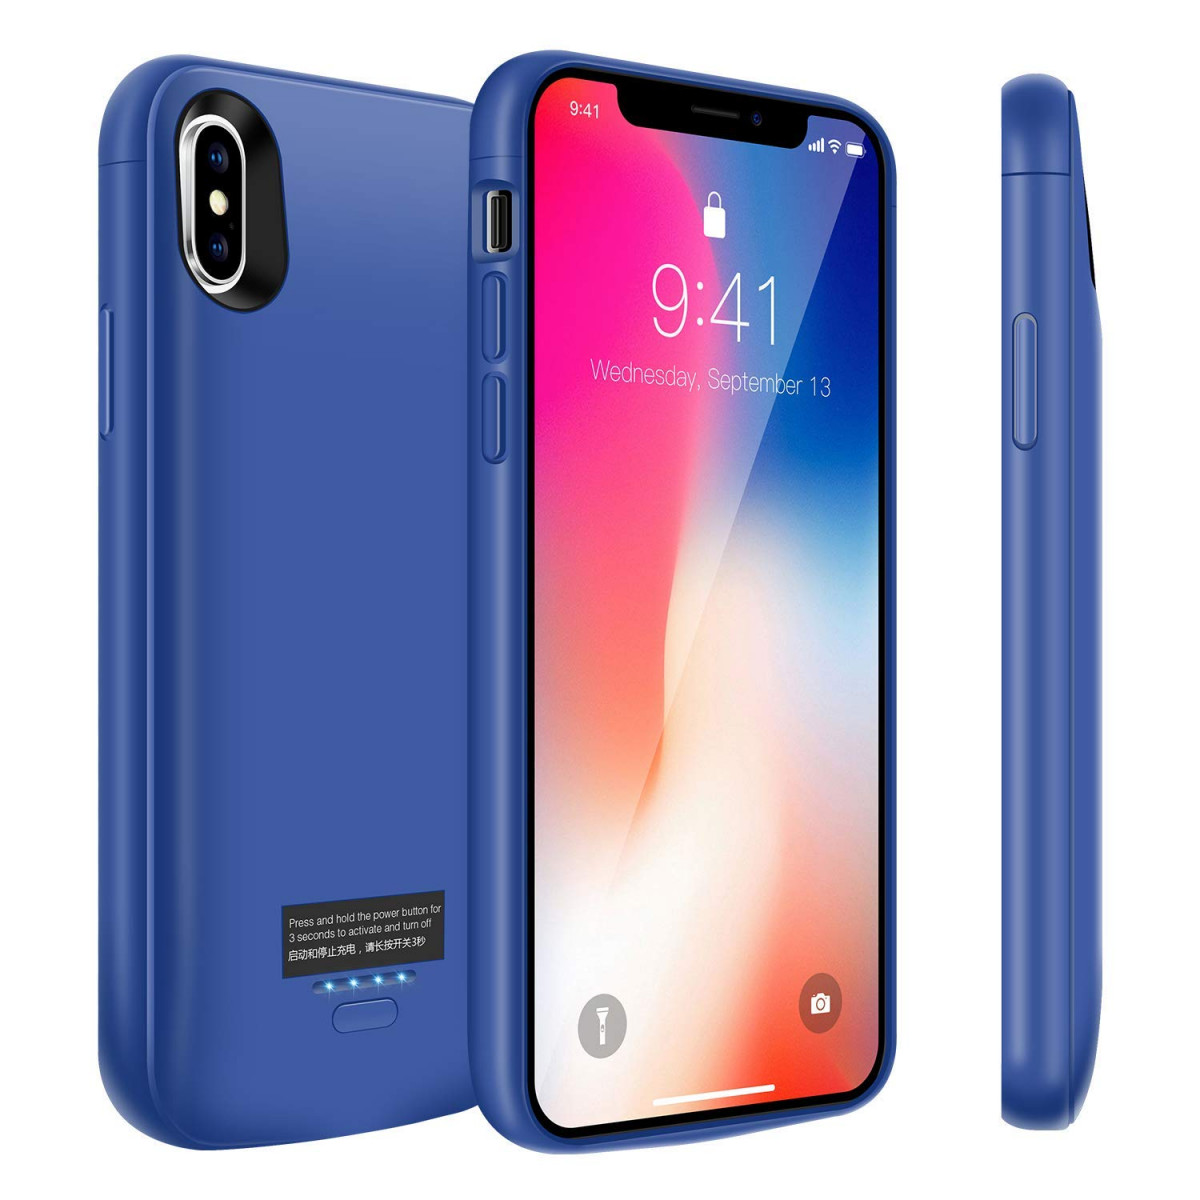 half off d1bce f6028 iPhone X Battery Case, 4000mAh Slim Portable Battery Charger Case,  Rechargeable Extended Battery Pack Charging Case for iPhone X/iPhone 10,  Compatible ...